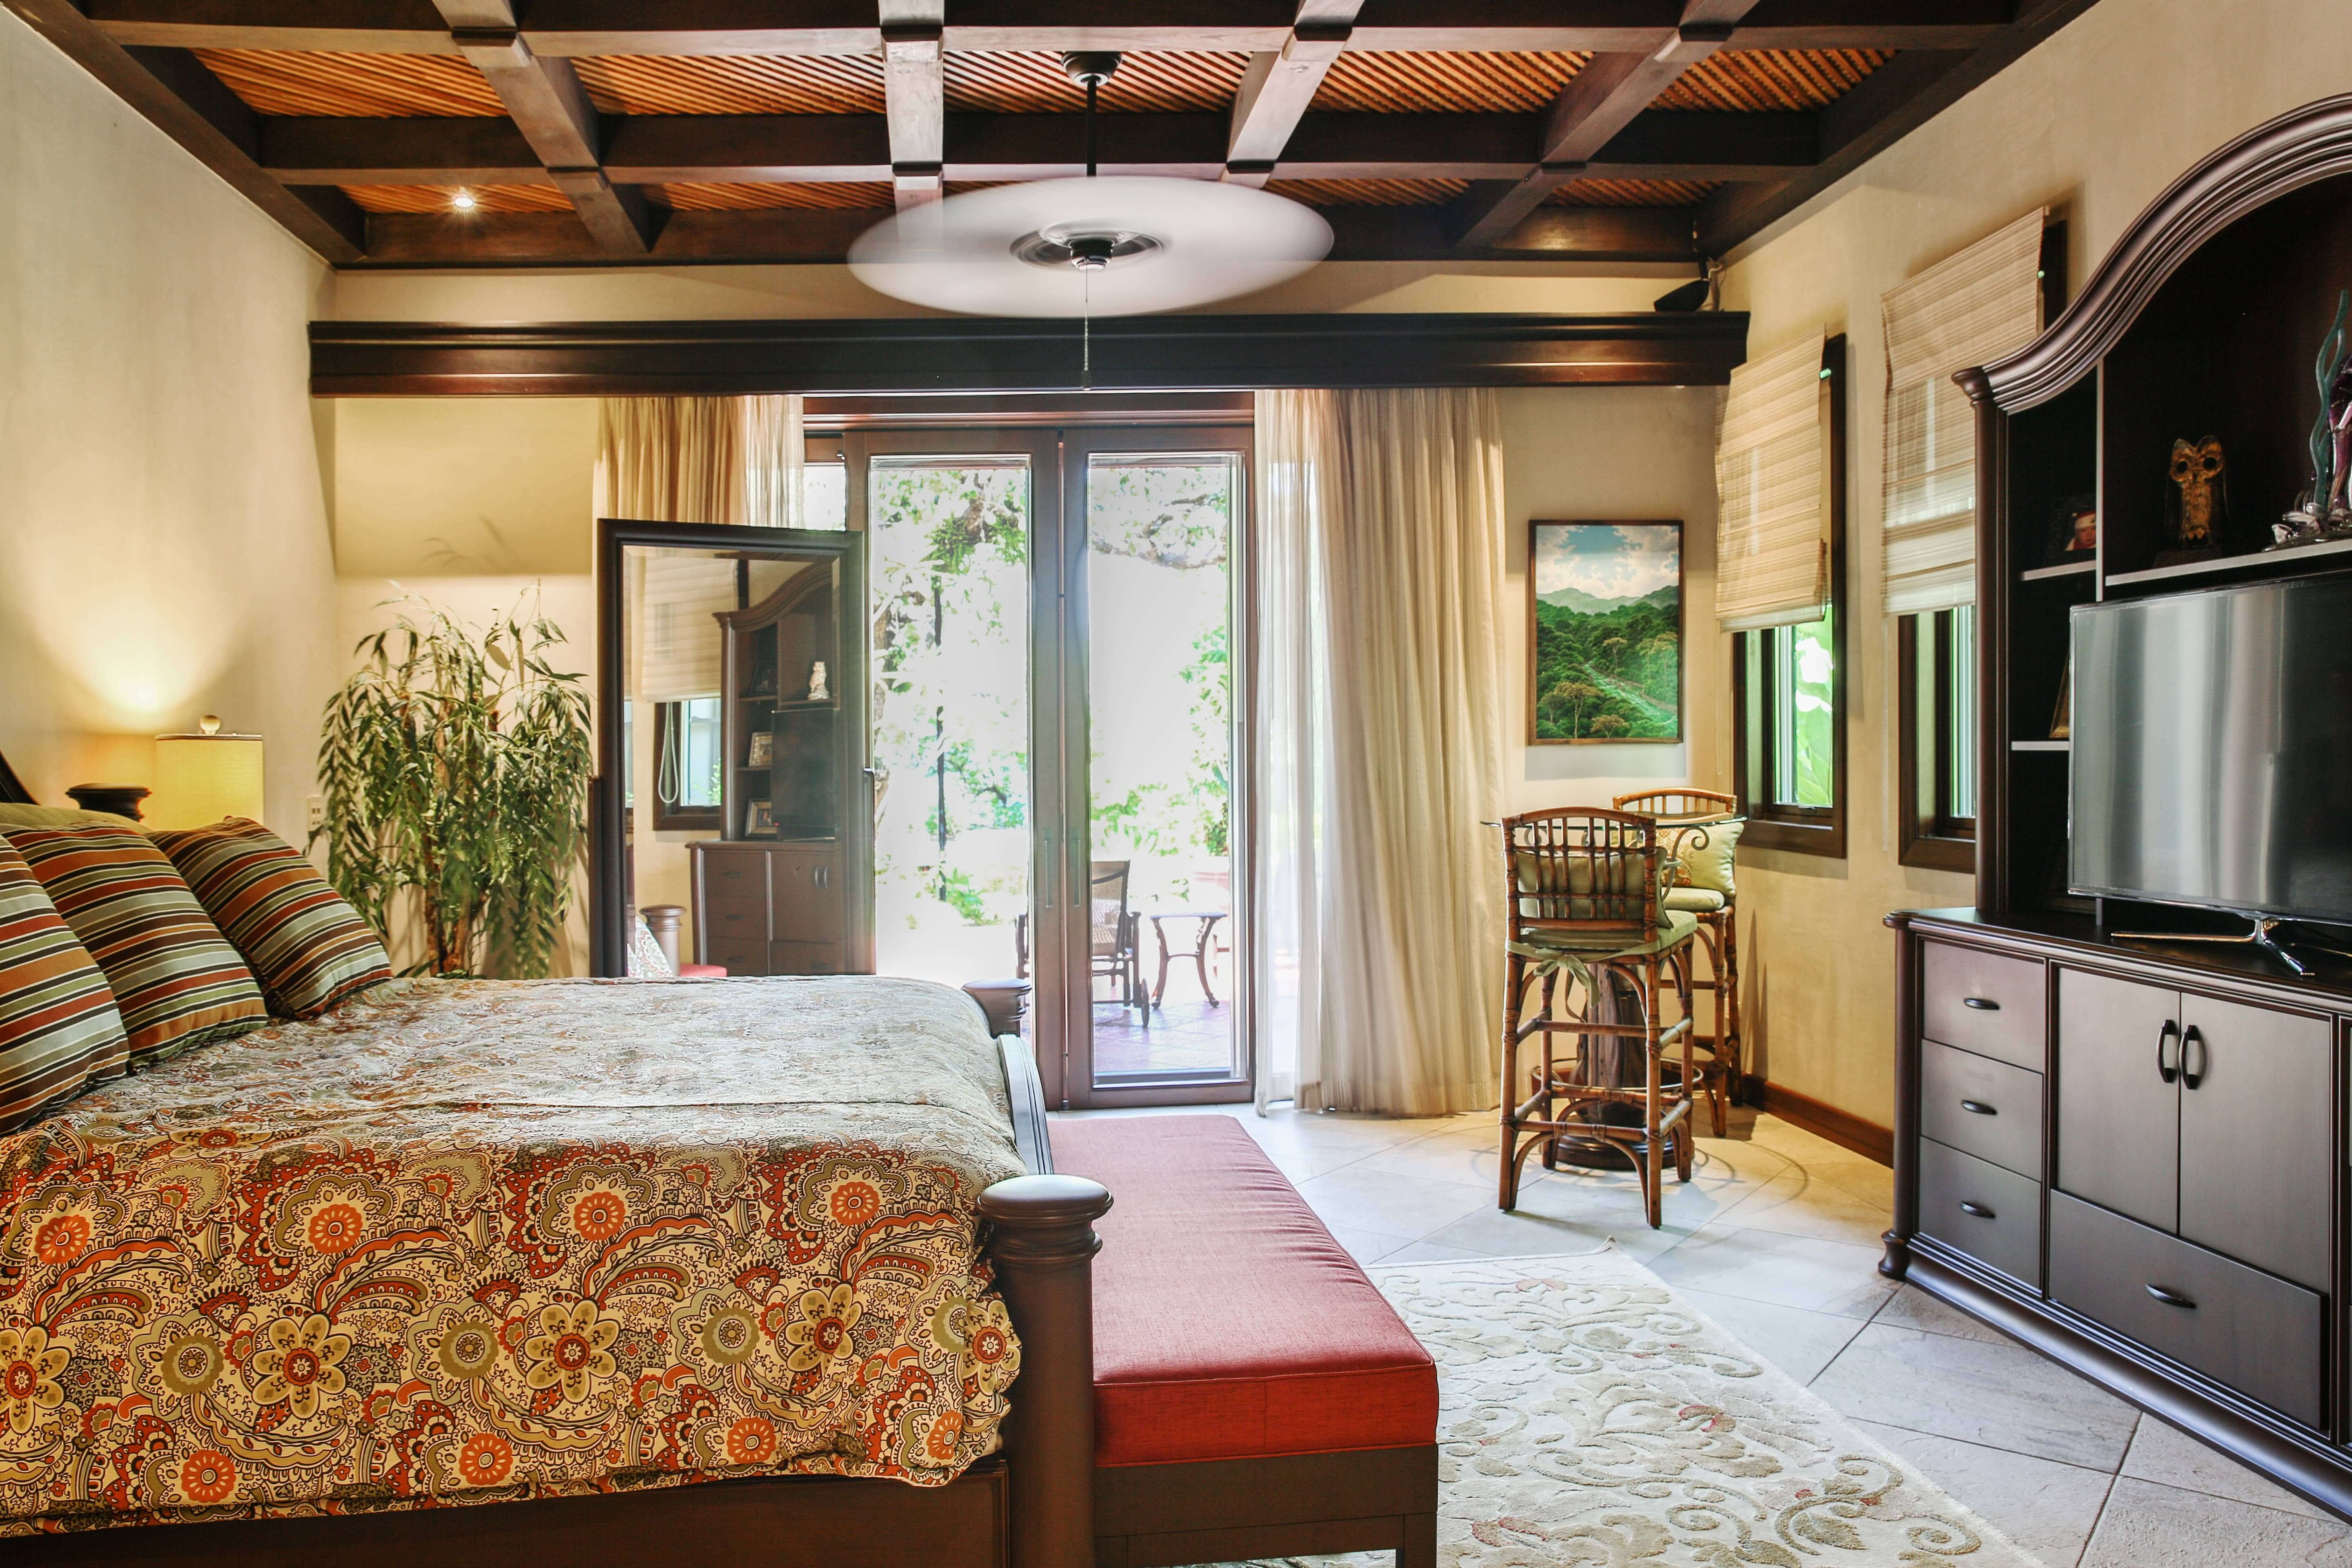 Bedroom with king sized bed